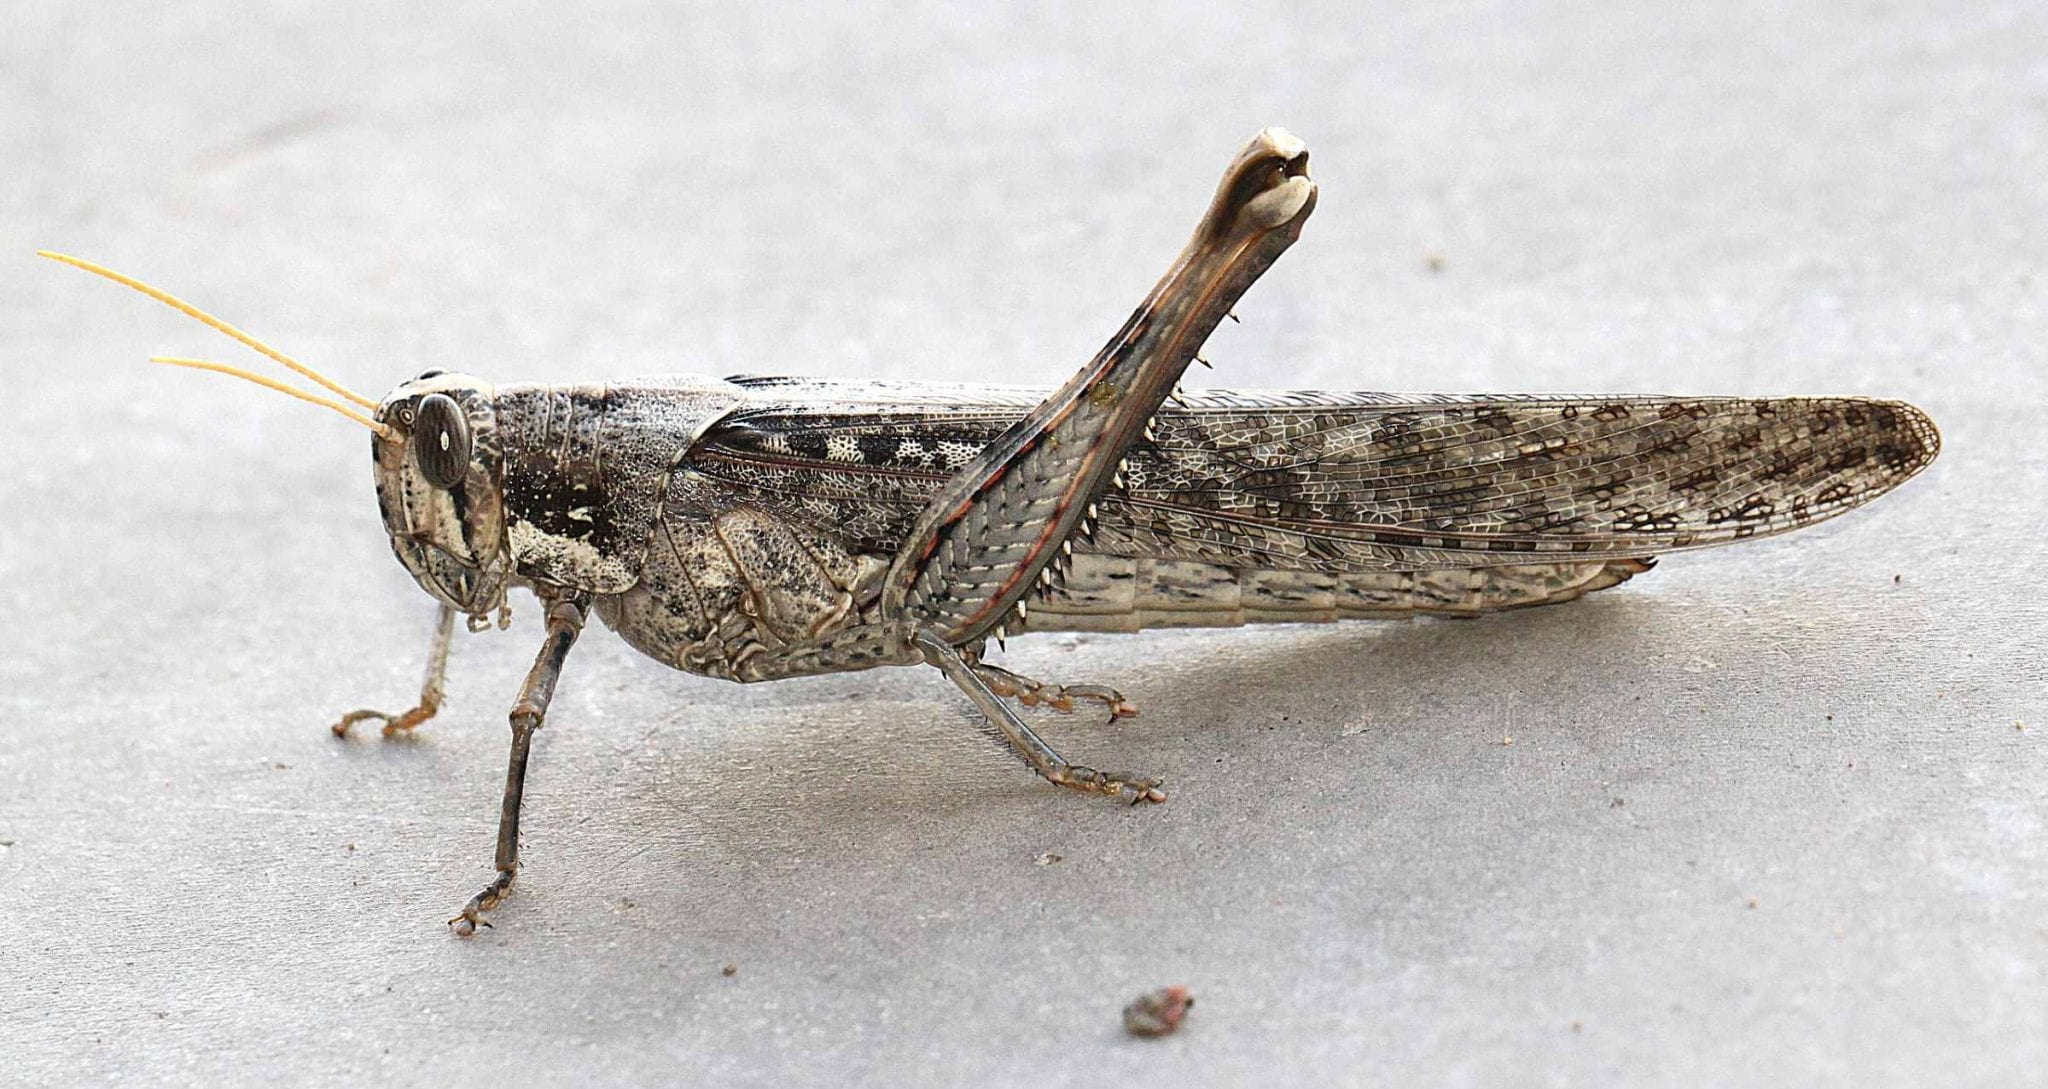 The drought in the West is contributing to grasshopper infestations.